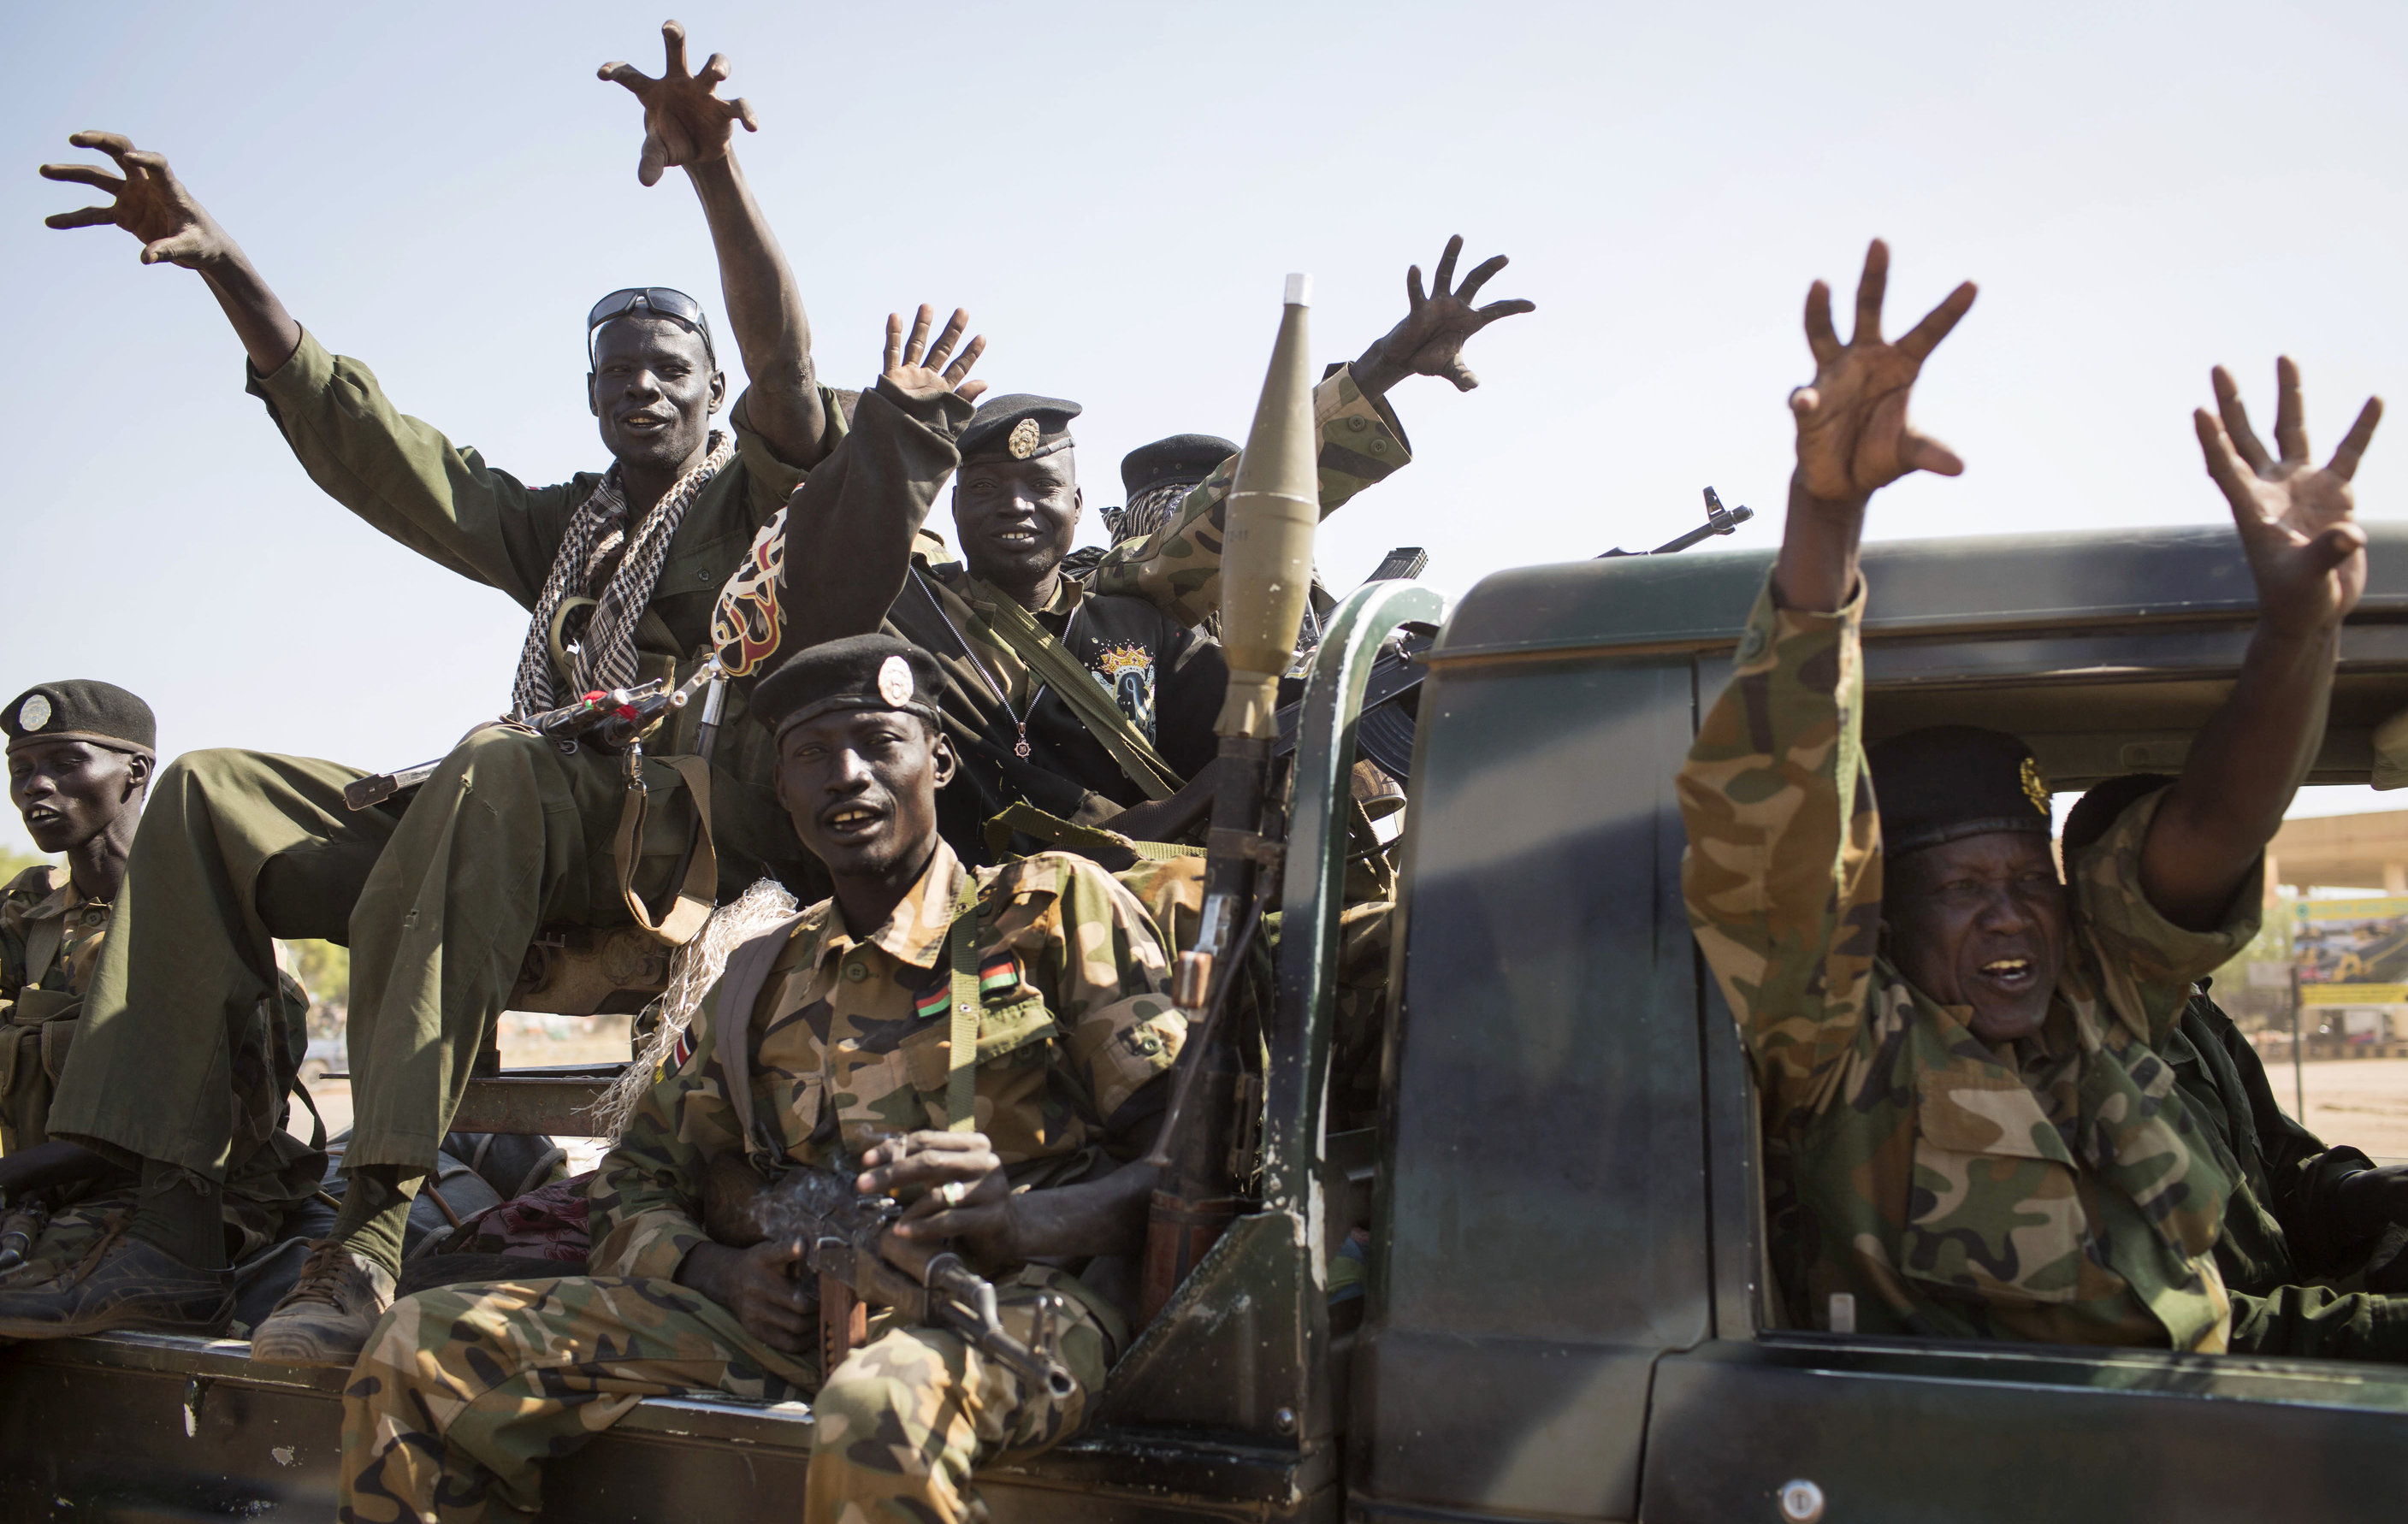 Daily Beast Op-ed: Government Ceasefire Is First Step Towards Peace in South Sudan